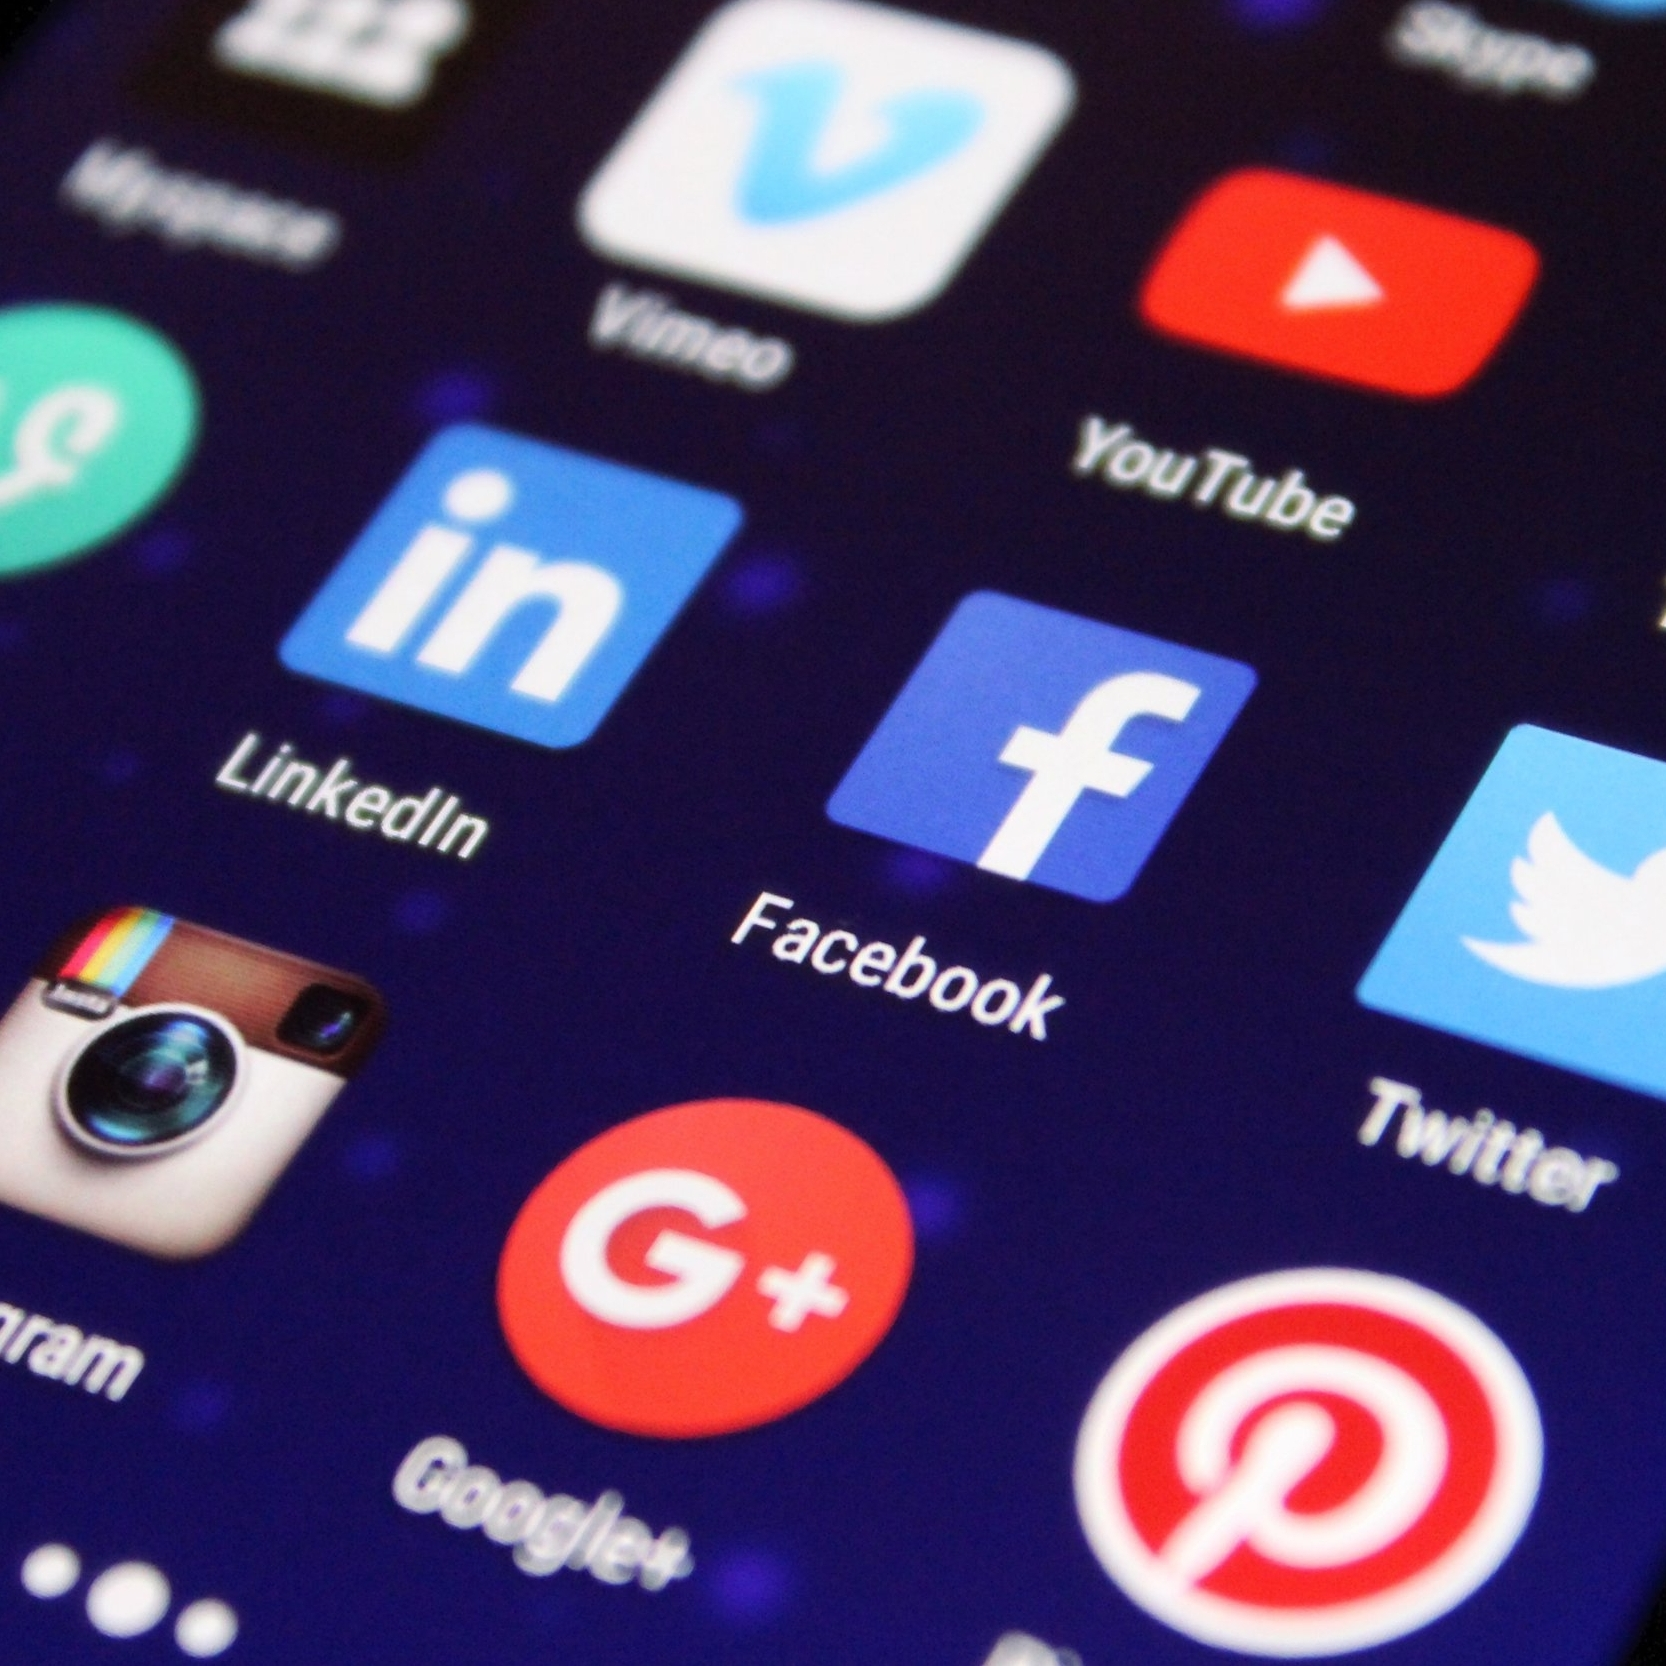 Social Media Marketing - From social media to digital advertising, we are a turnkey solution for all of your digital marketing goals.